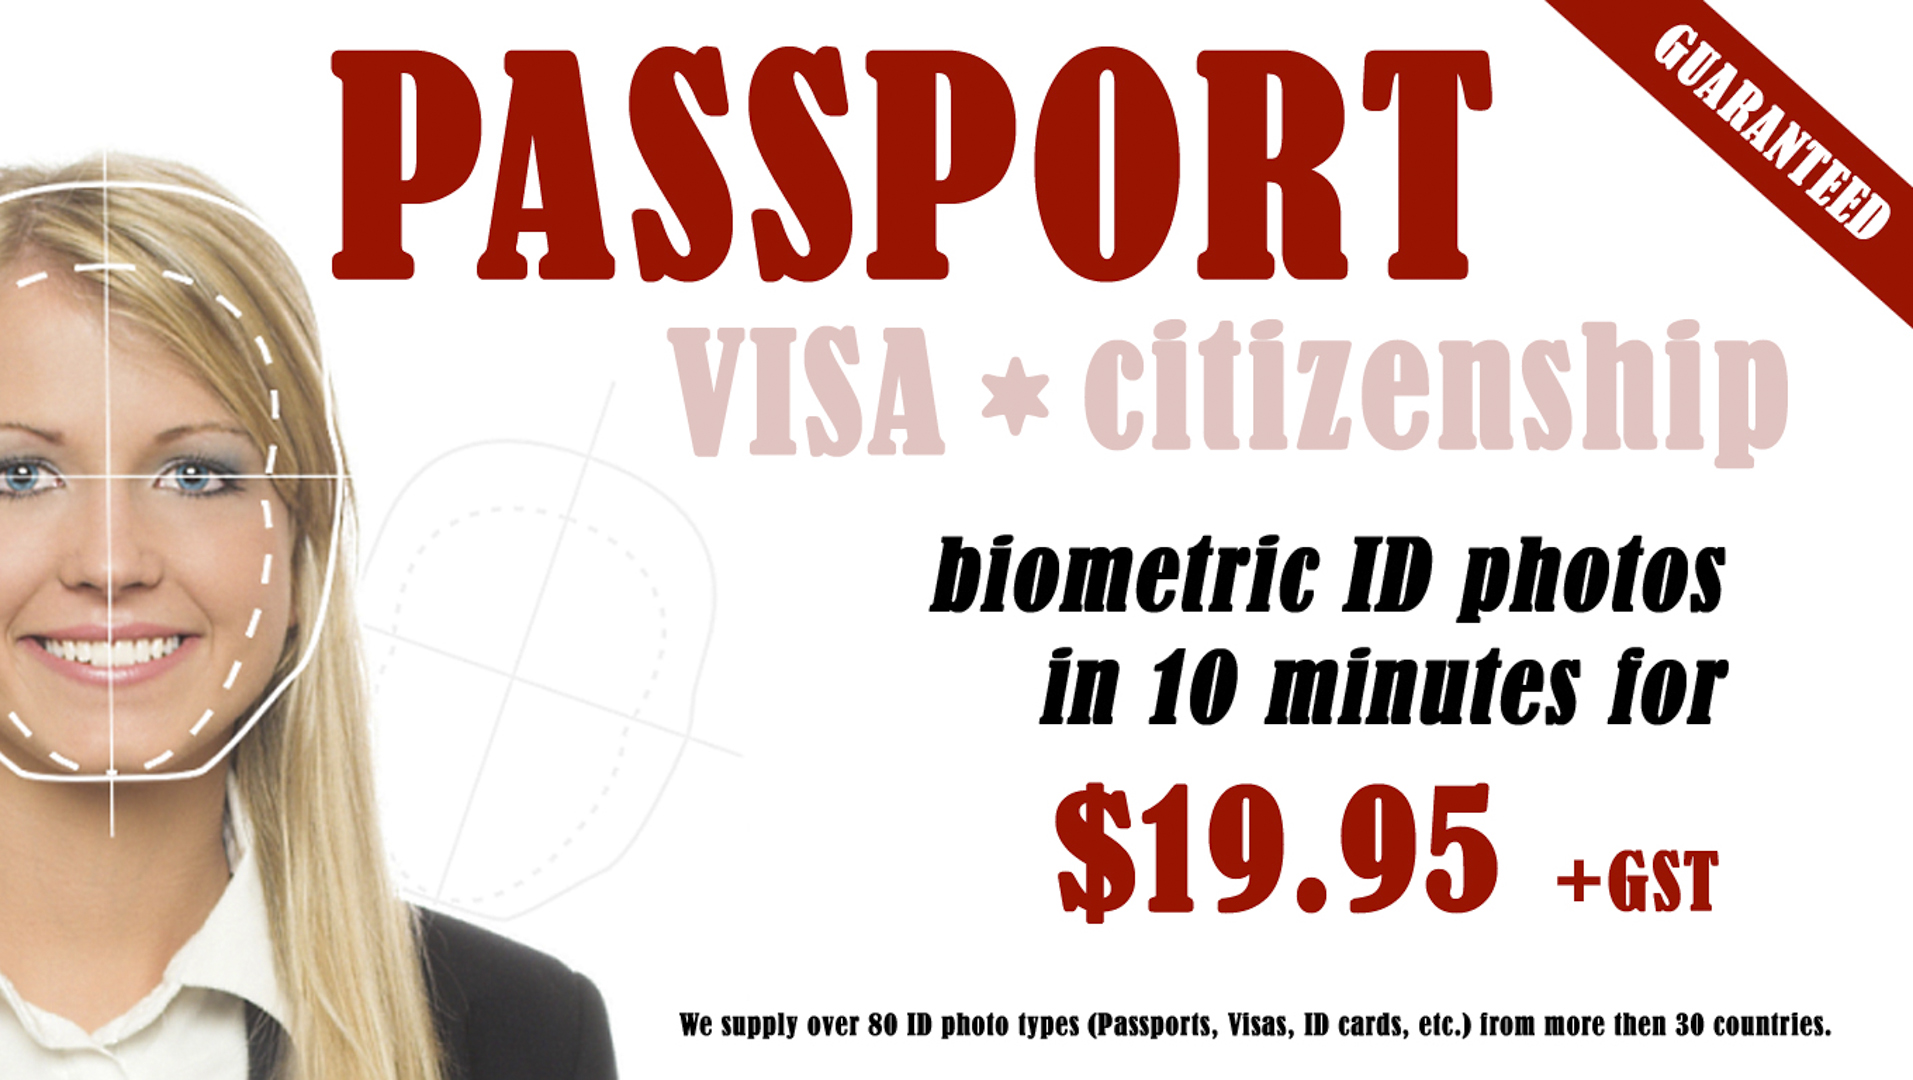 Guaranteed Passport Photos for $19.95